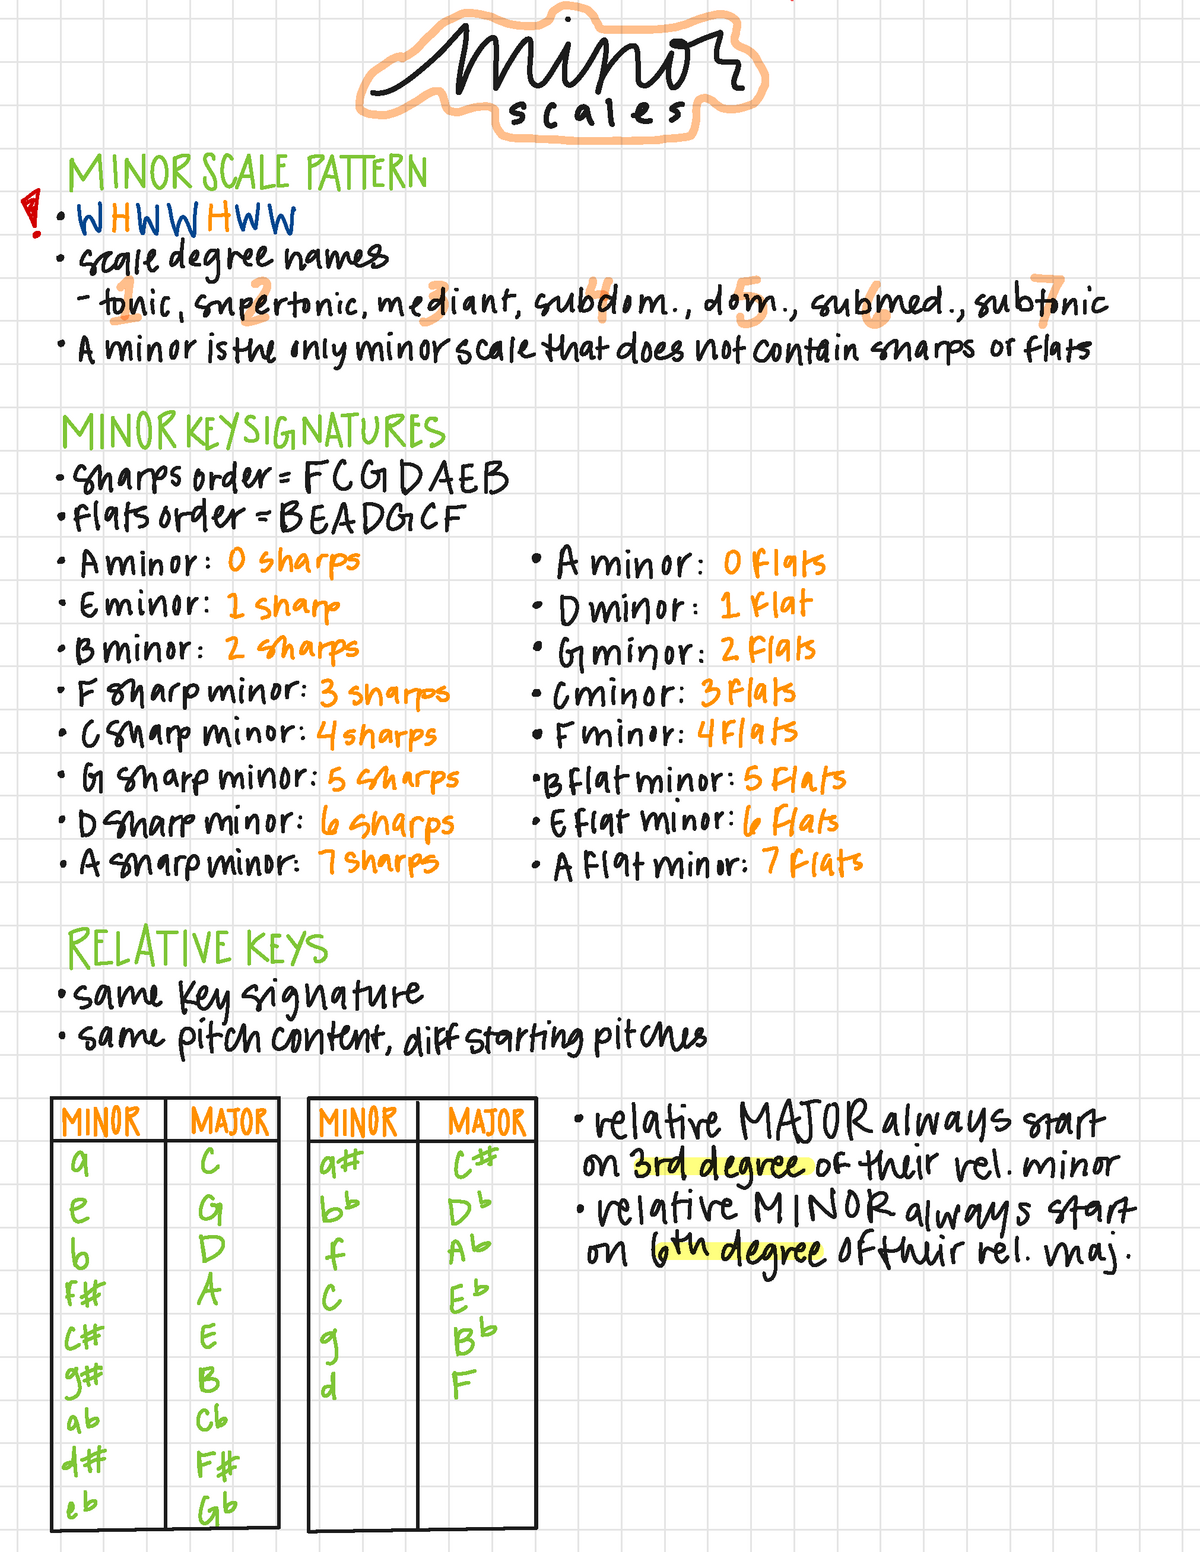 Minor Scales Lesson Notes   I minor scales SC Z A. WHWWHWW ° scale ...